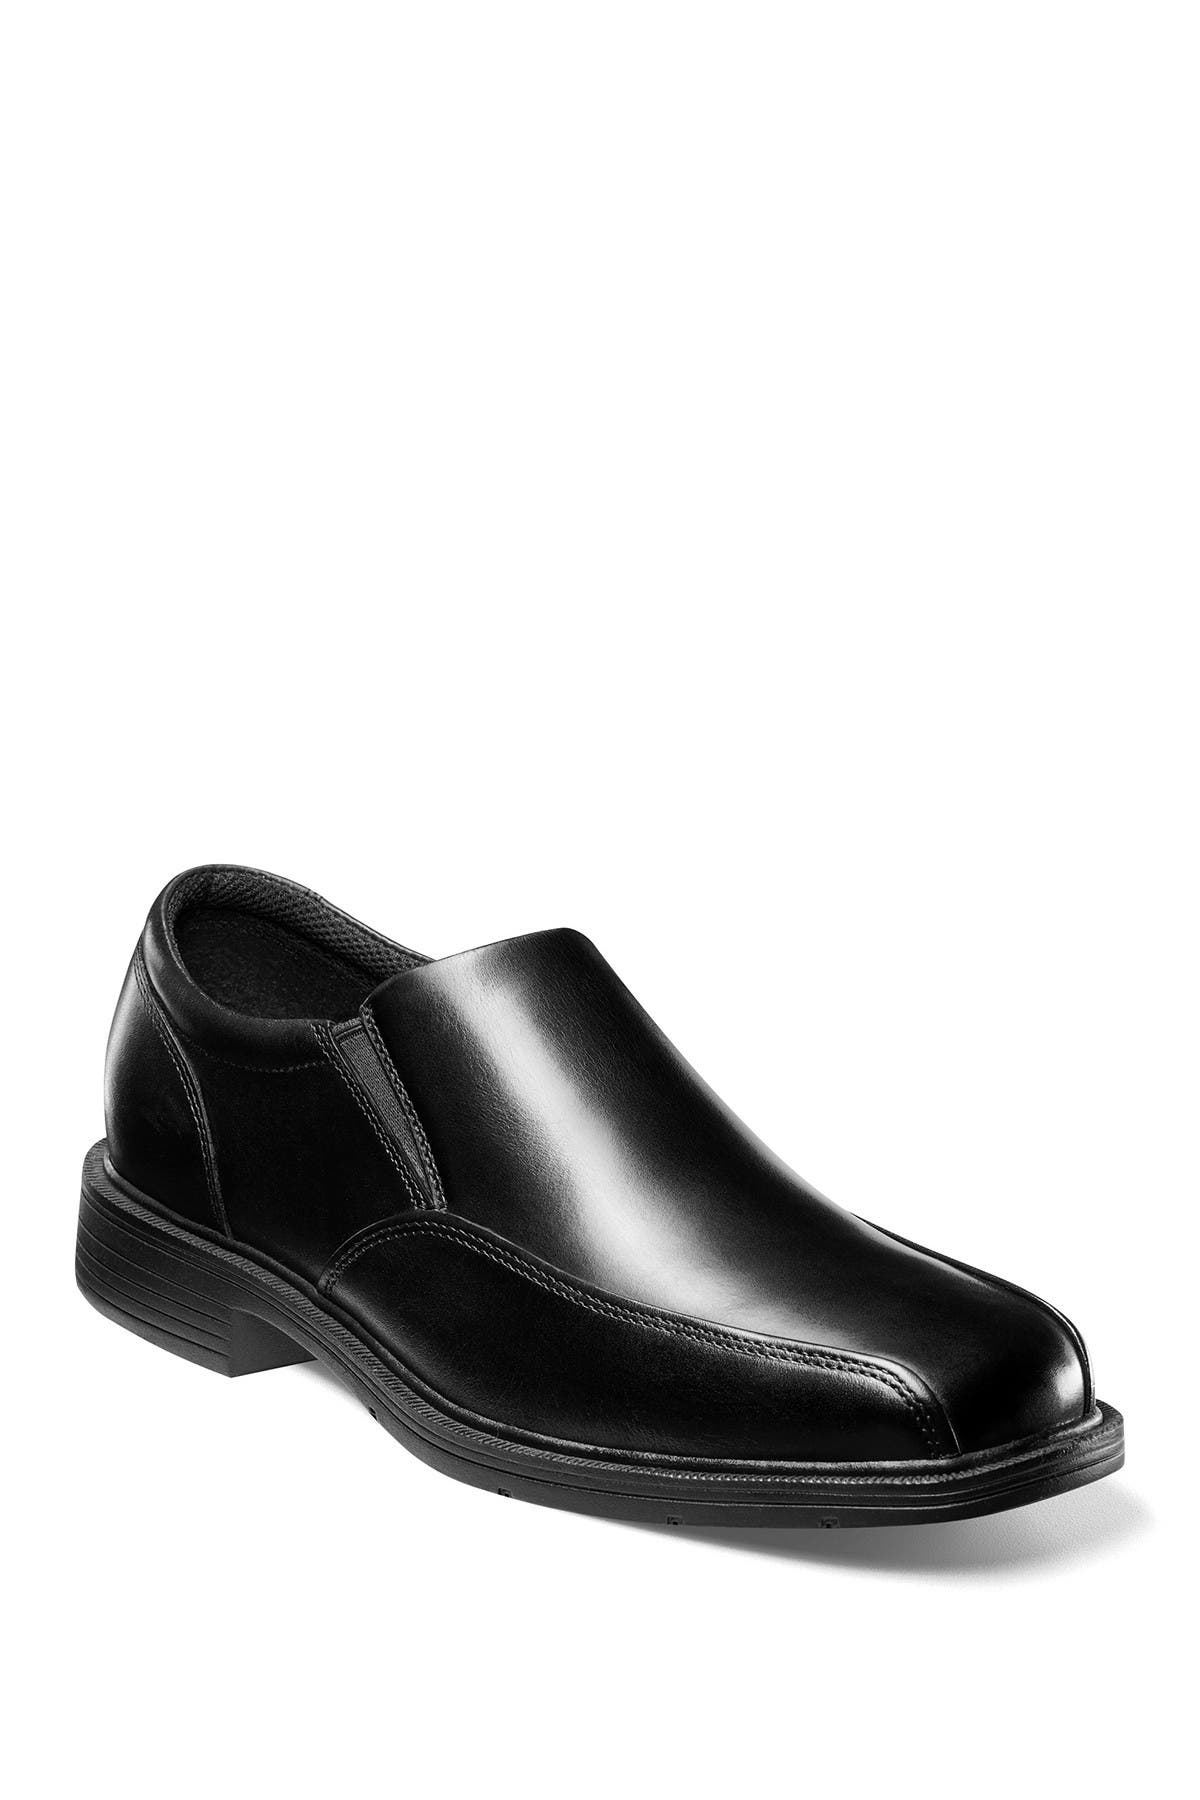 Image of NUNN BUSH Louis Bike Toe Loafer